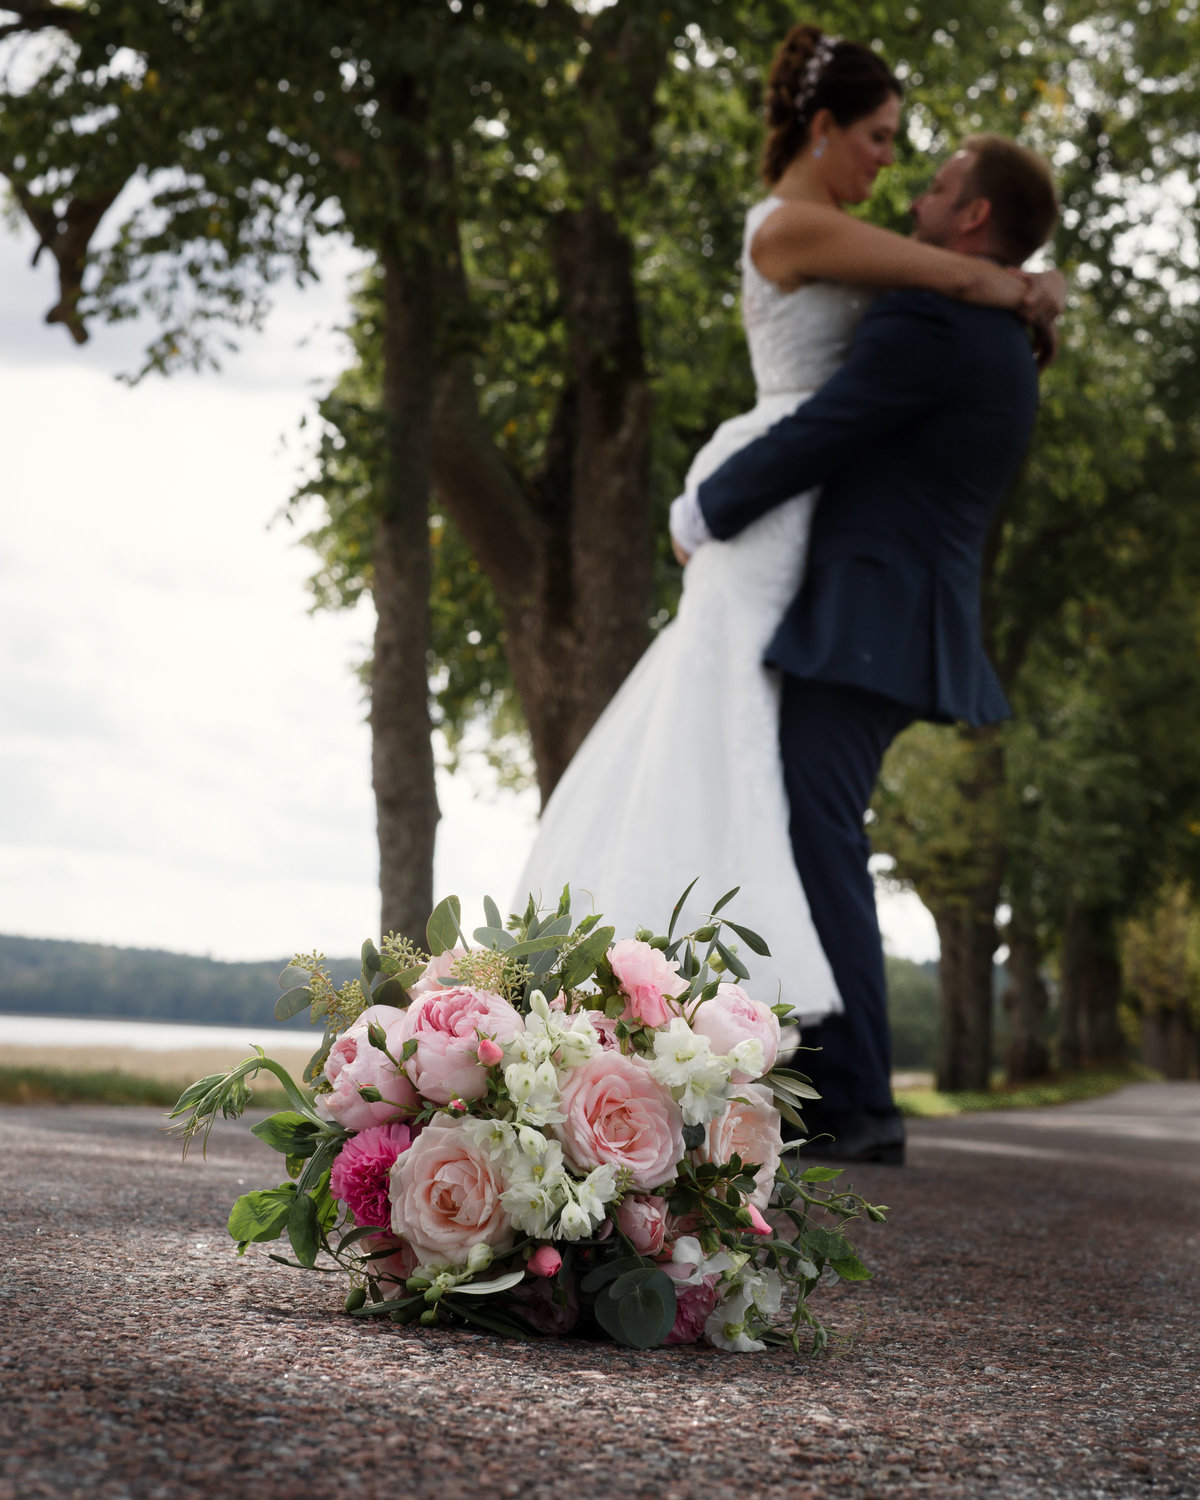 Groom lifts up his bride with the pink peony weddingbouquet in front of them in the alley